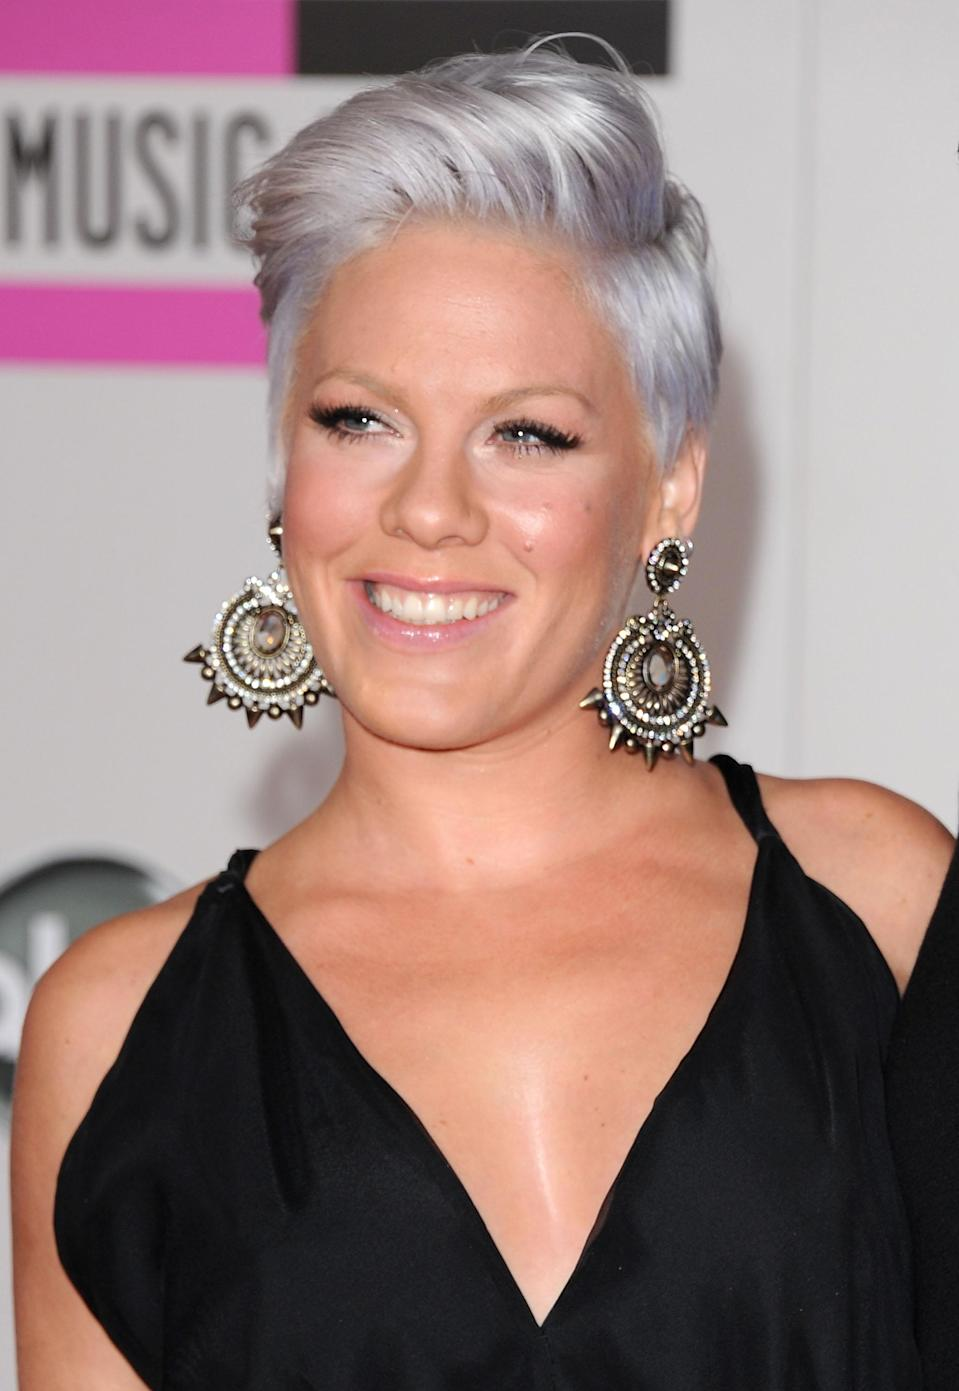 <p>Pink looks like a gorgeous silver fox who's ready to win. (Photo: Getty Images) </p>